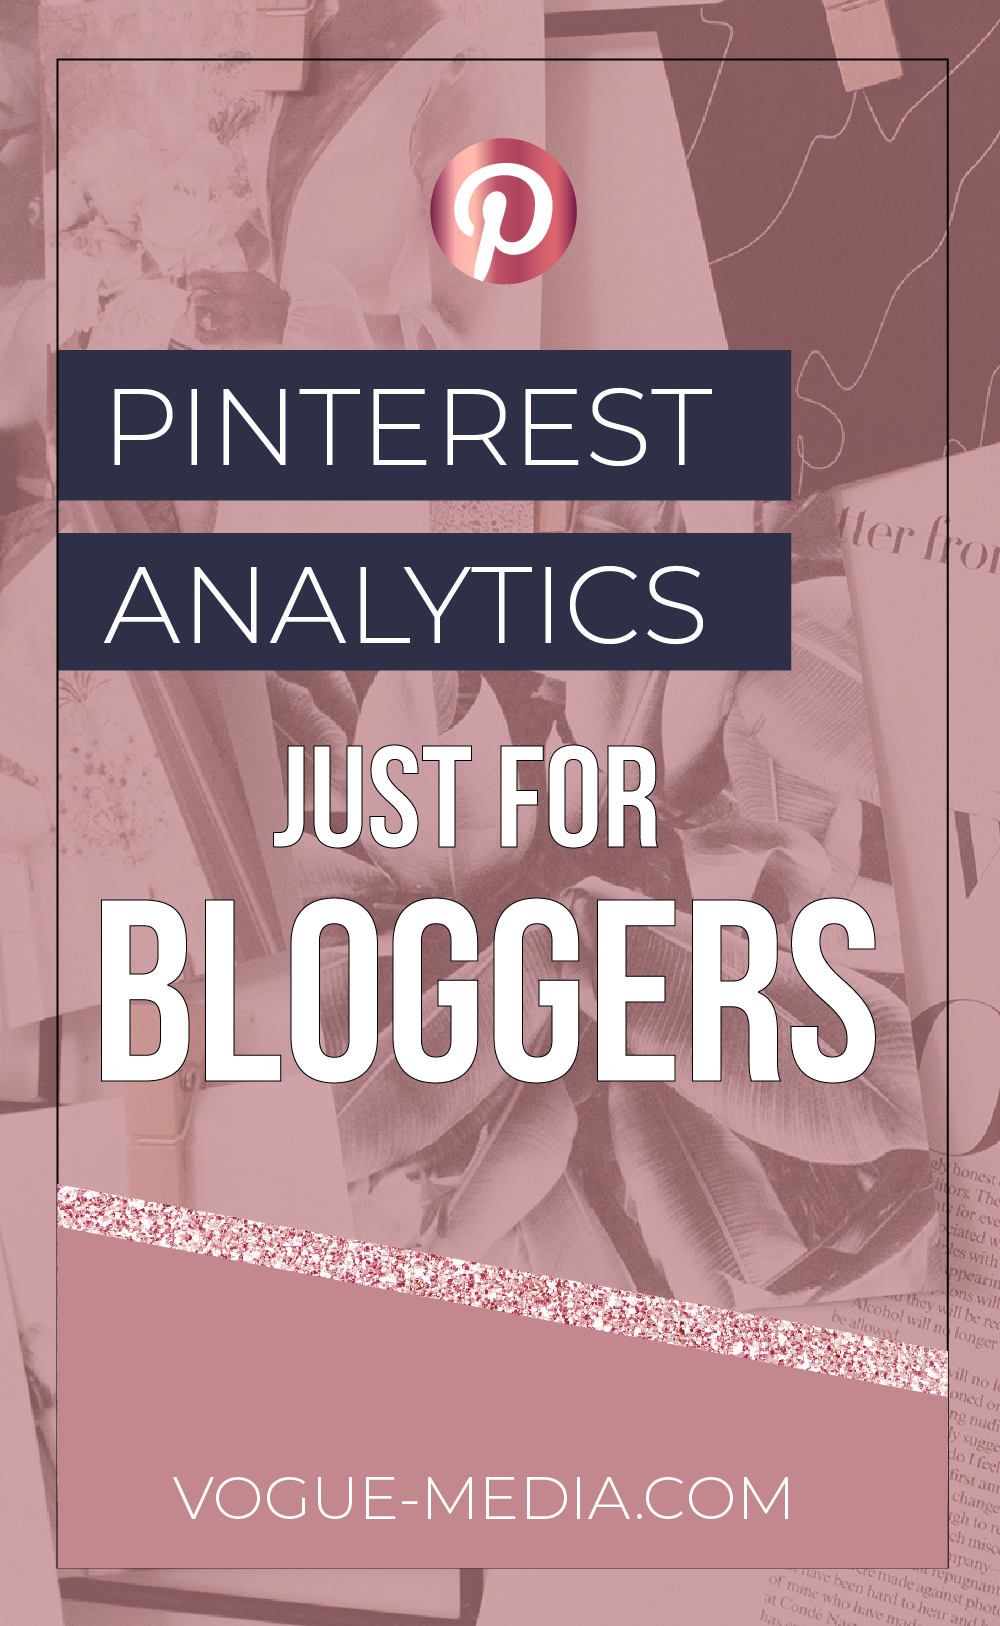 Pinterest Analytics for Bloggers